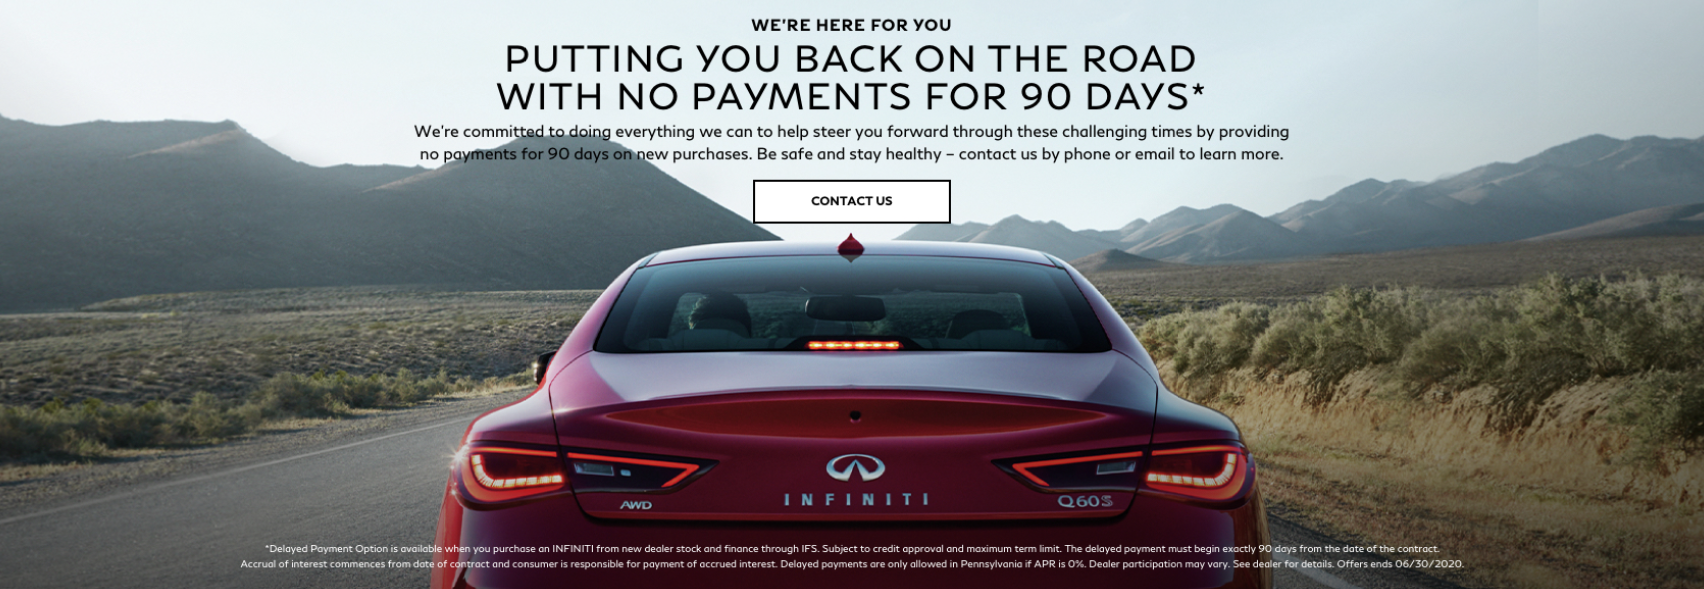 Receive a special 90-day delayed payment option with the purchase of any new INFINITI. Contact us to learn more.